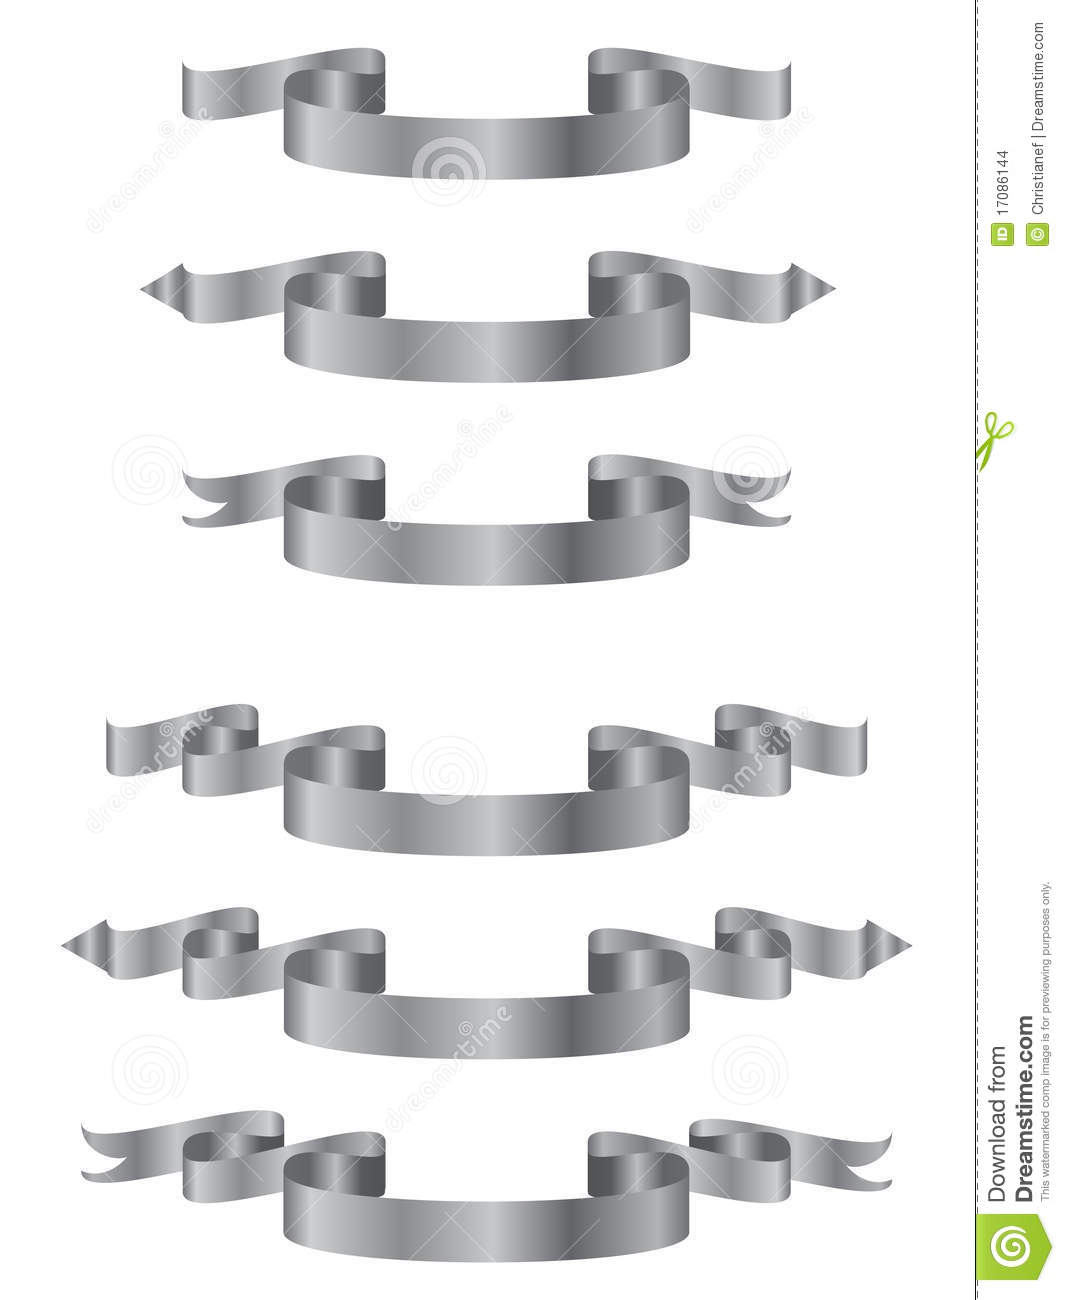 Silver Banners Stock Images - Image: 17086144